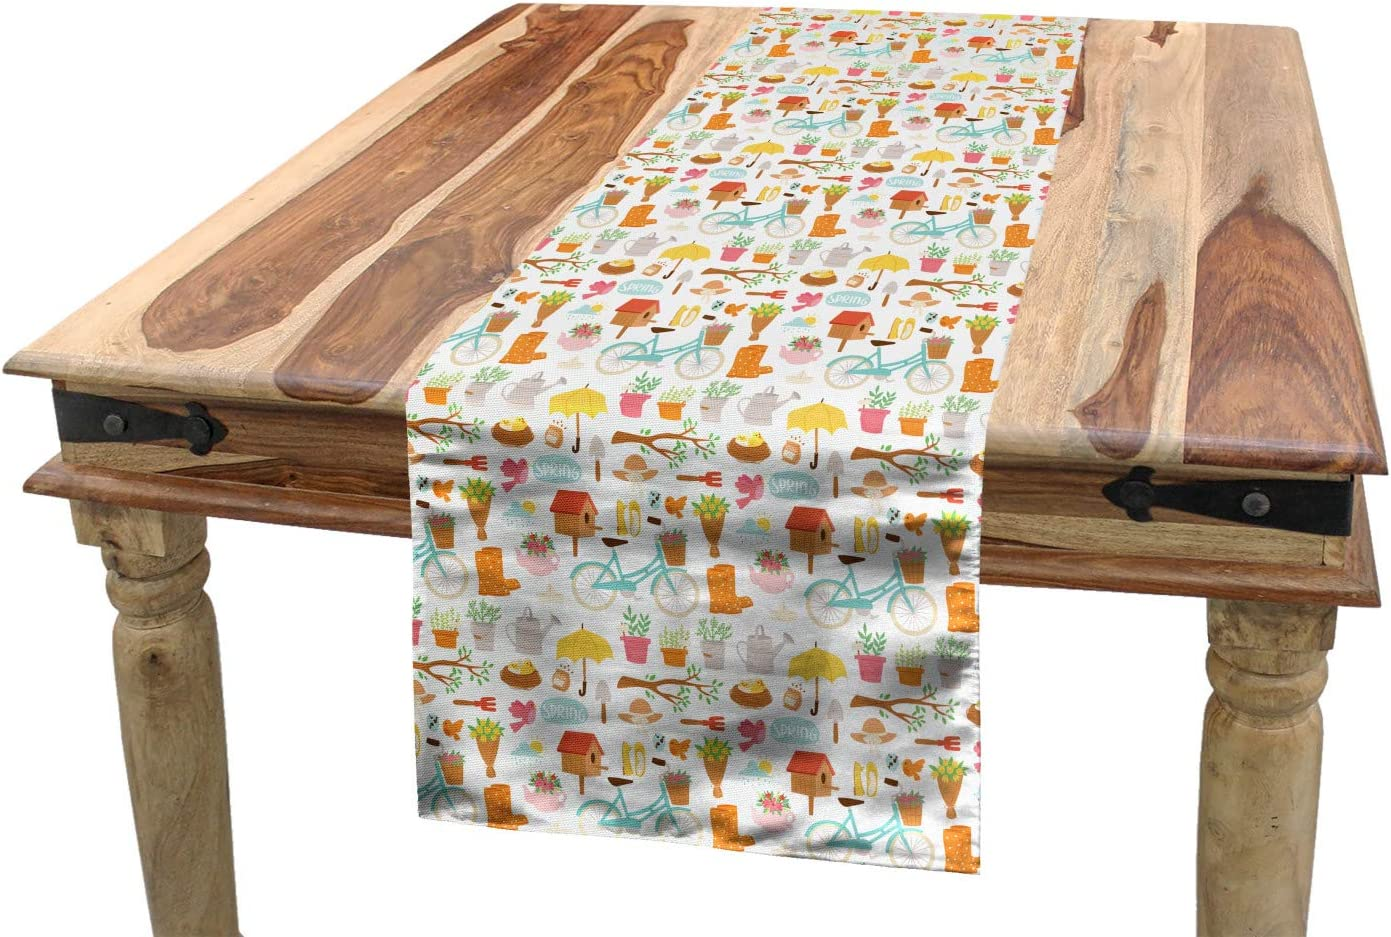 Amazon Com Ambesonne Birdhouse Table Runner Repetitive Garden Items Cartoon Of Nest Bicycle Minimal Dining Room Kitchen Rectangular Runner 16 X 72 Apricot And Multicolor Home Kitchen